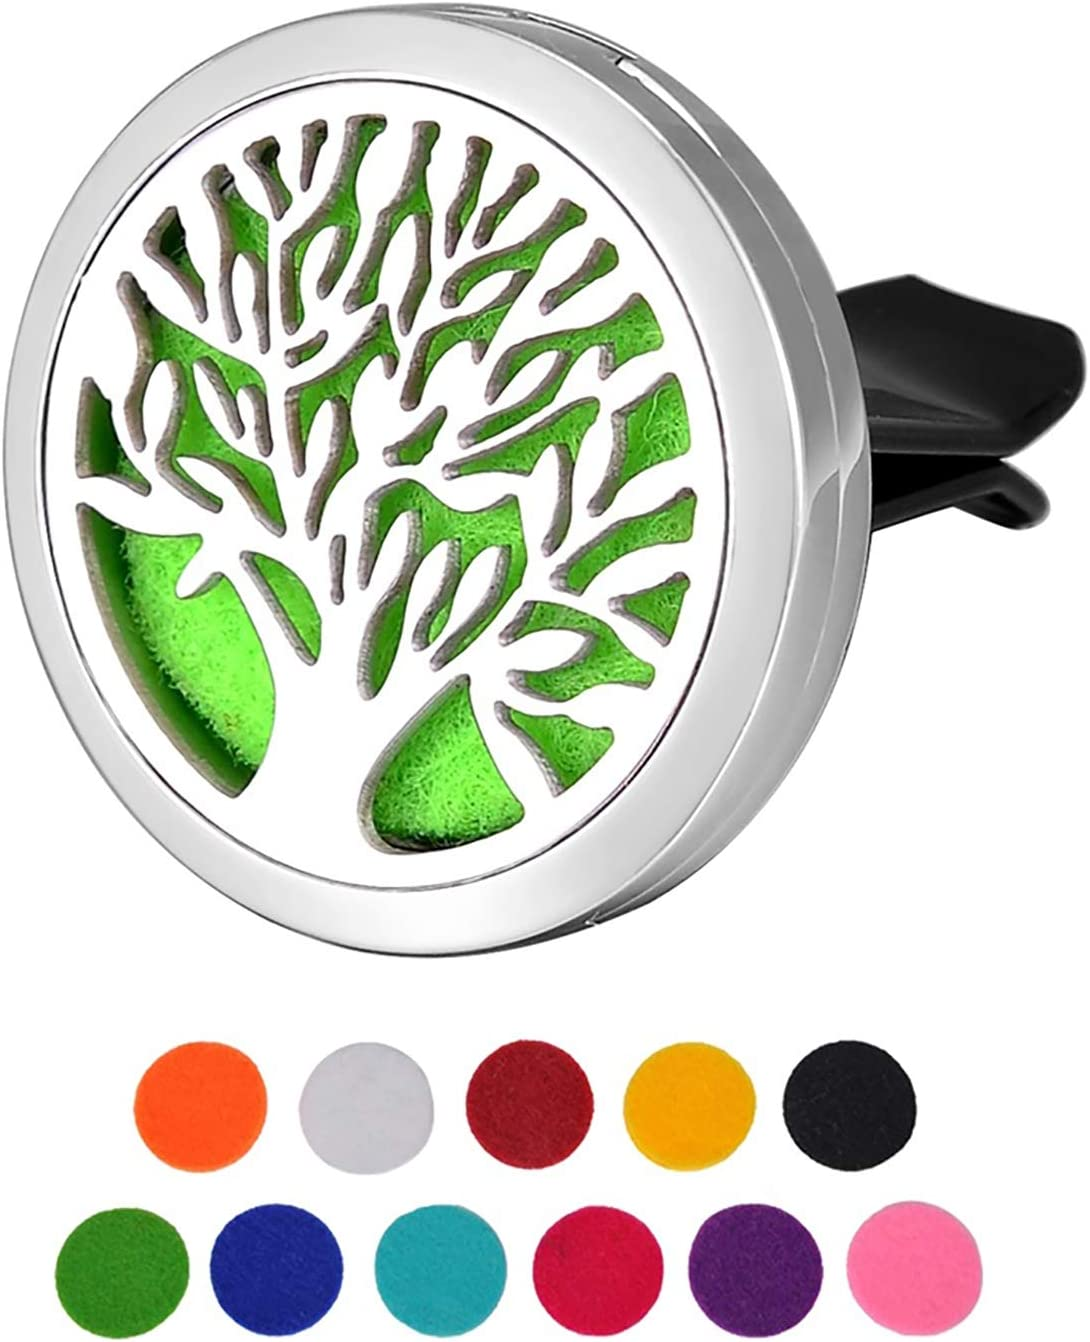 Housweety Tree Of Life Car Air Freshener Aromatherapy Essential Oil Diffuser Locket With Vent Clip 11 Refill Pads Amazon Ca Home Kitchen